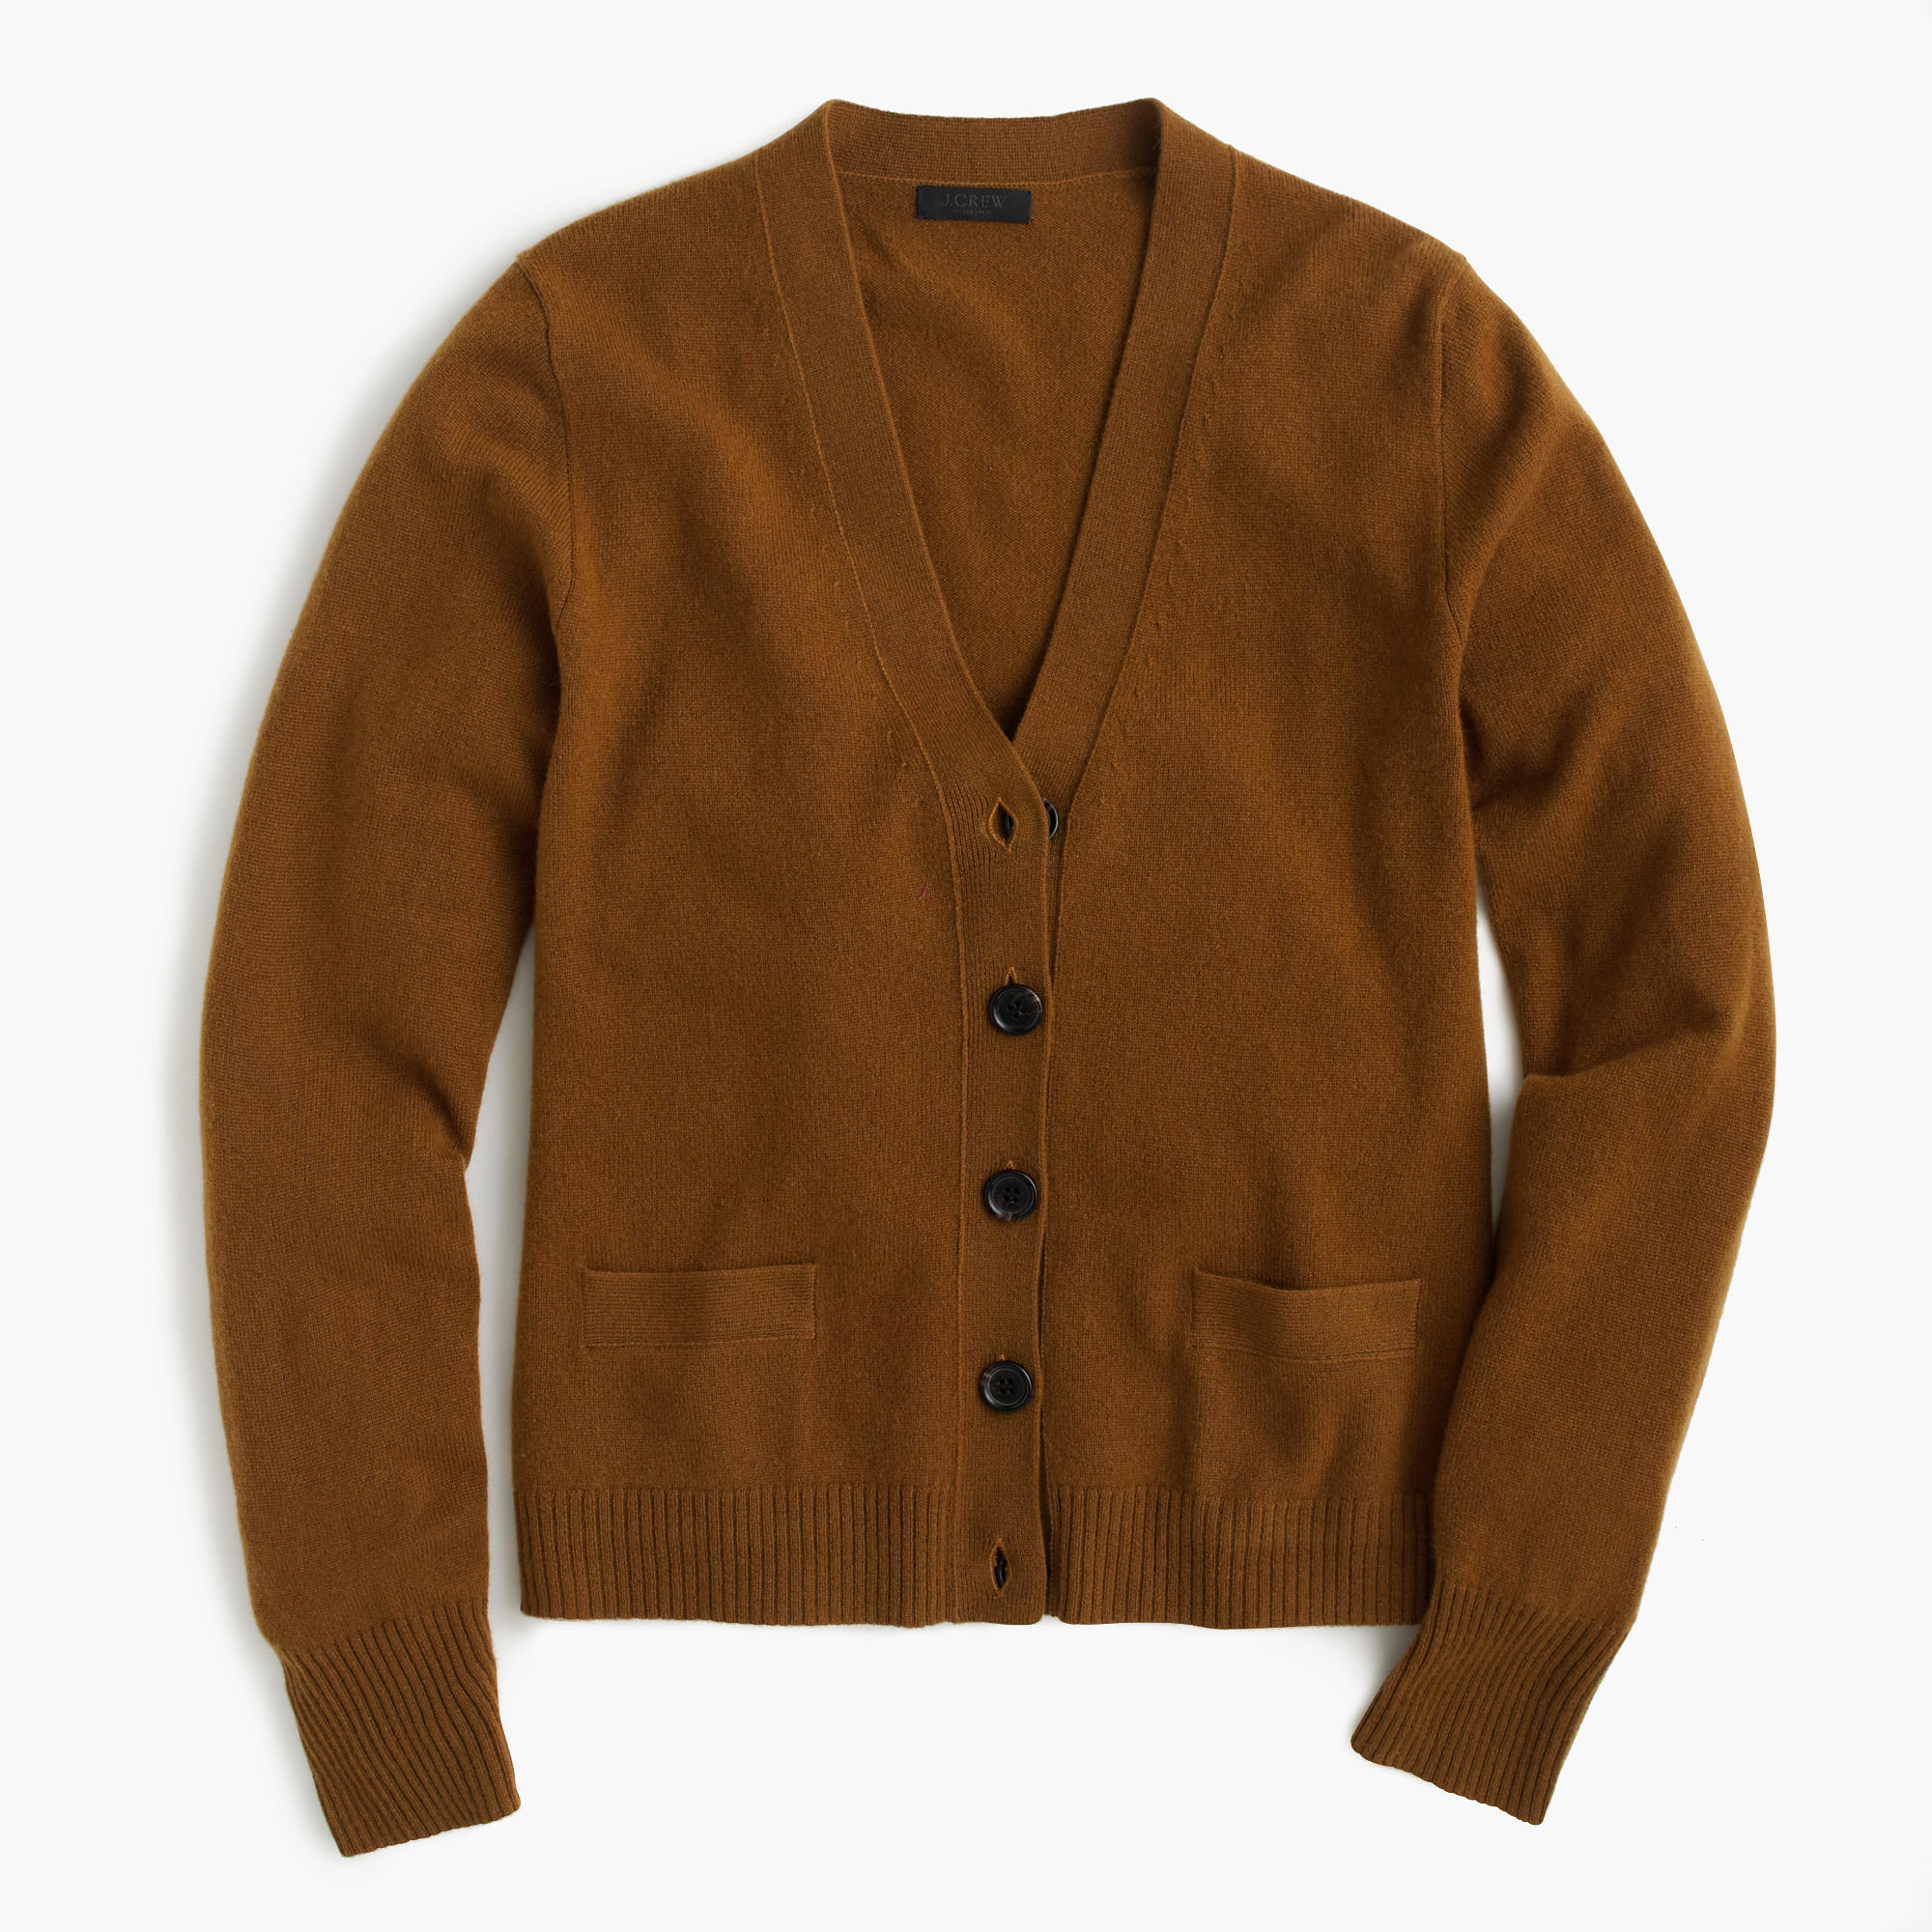 J.crew Italian Cashmere Short Cardigan Sweater in Brown | Lyst